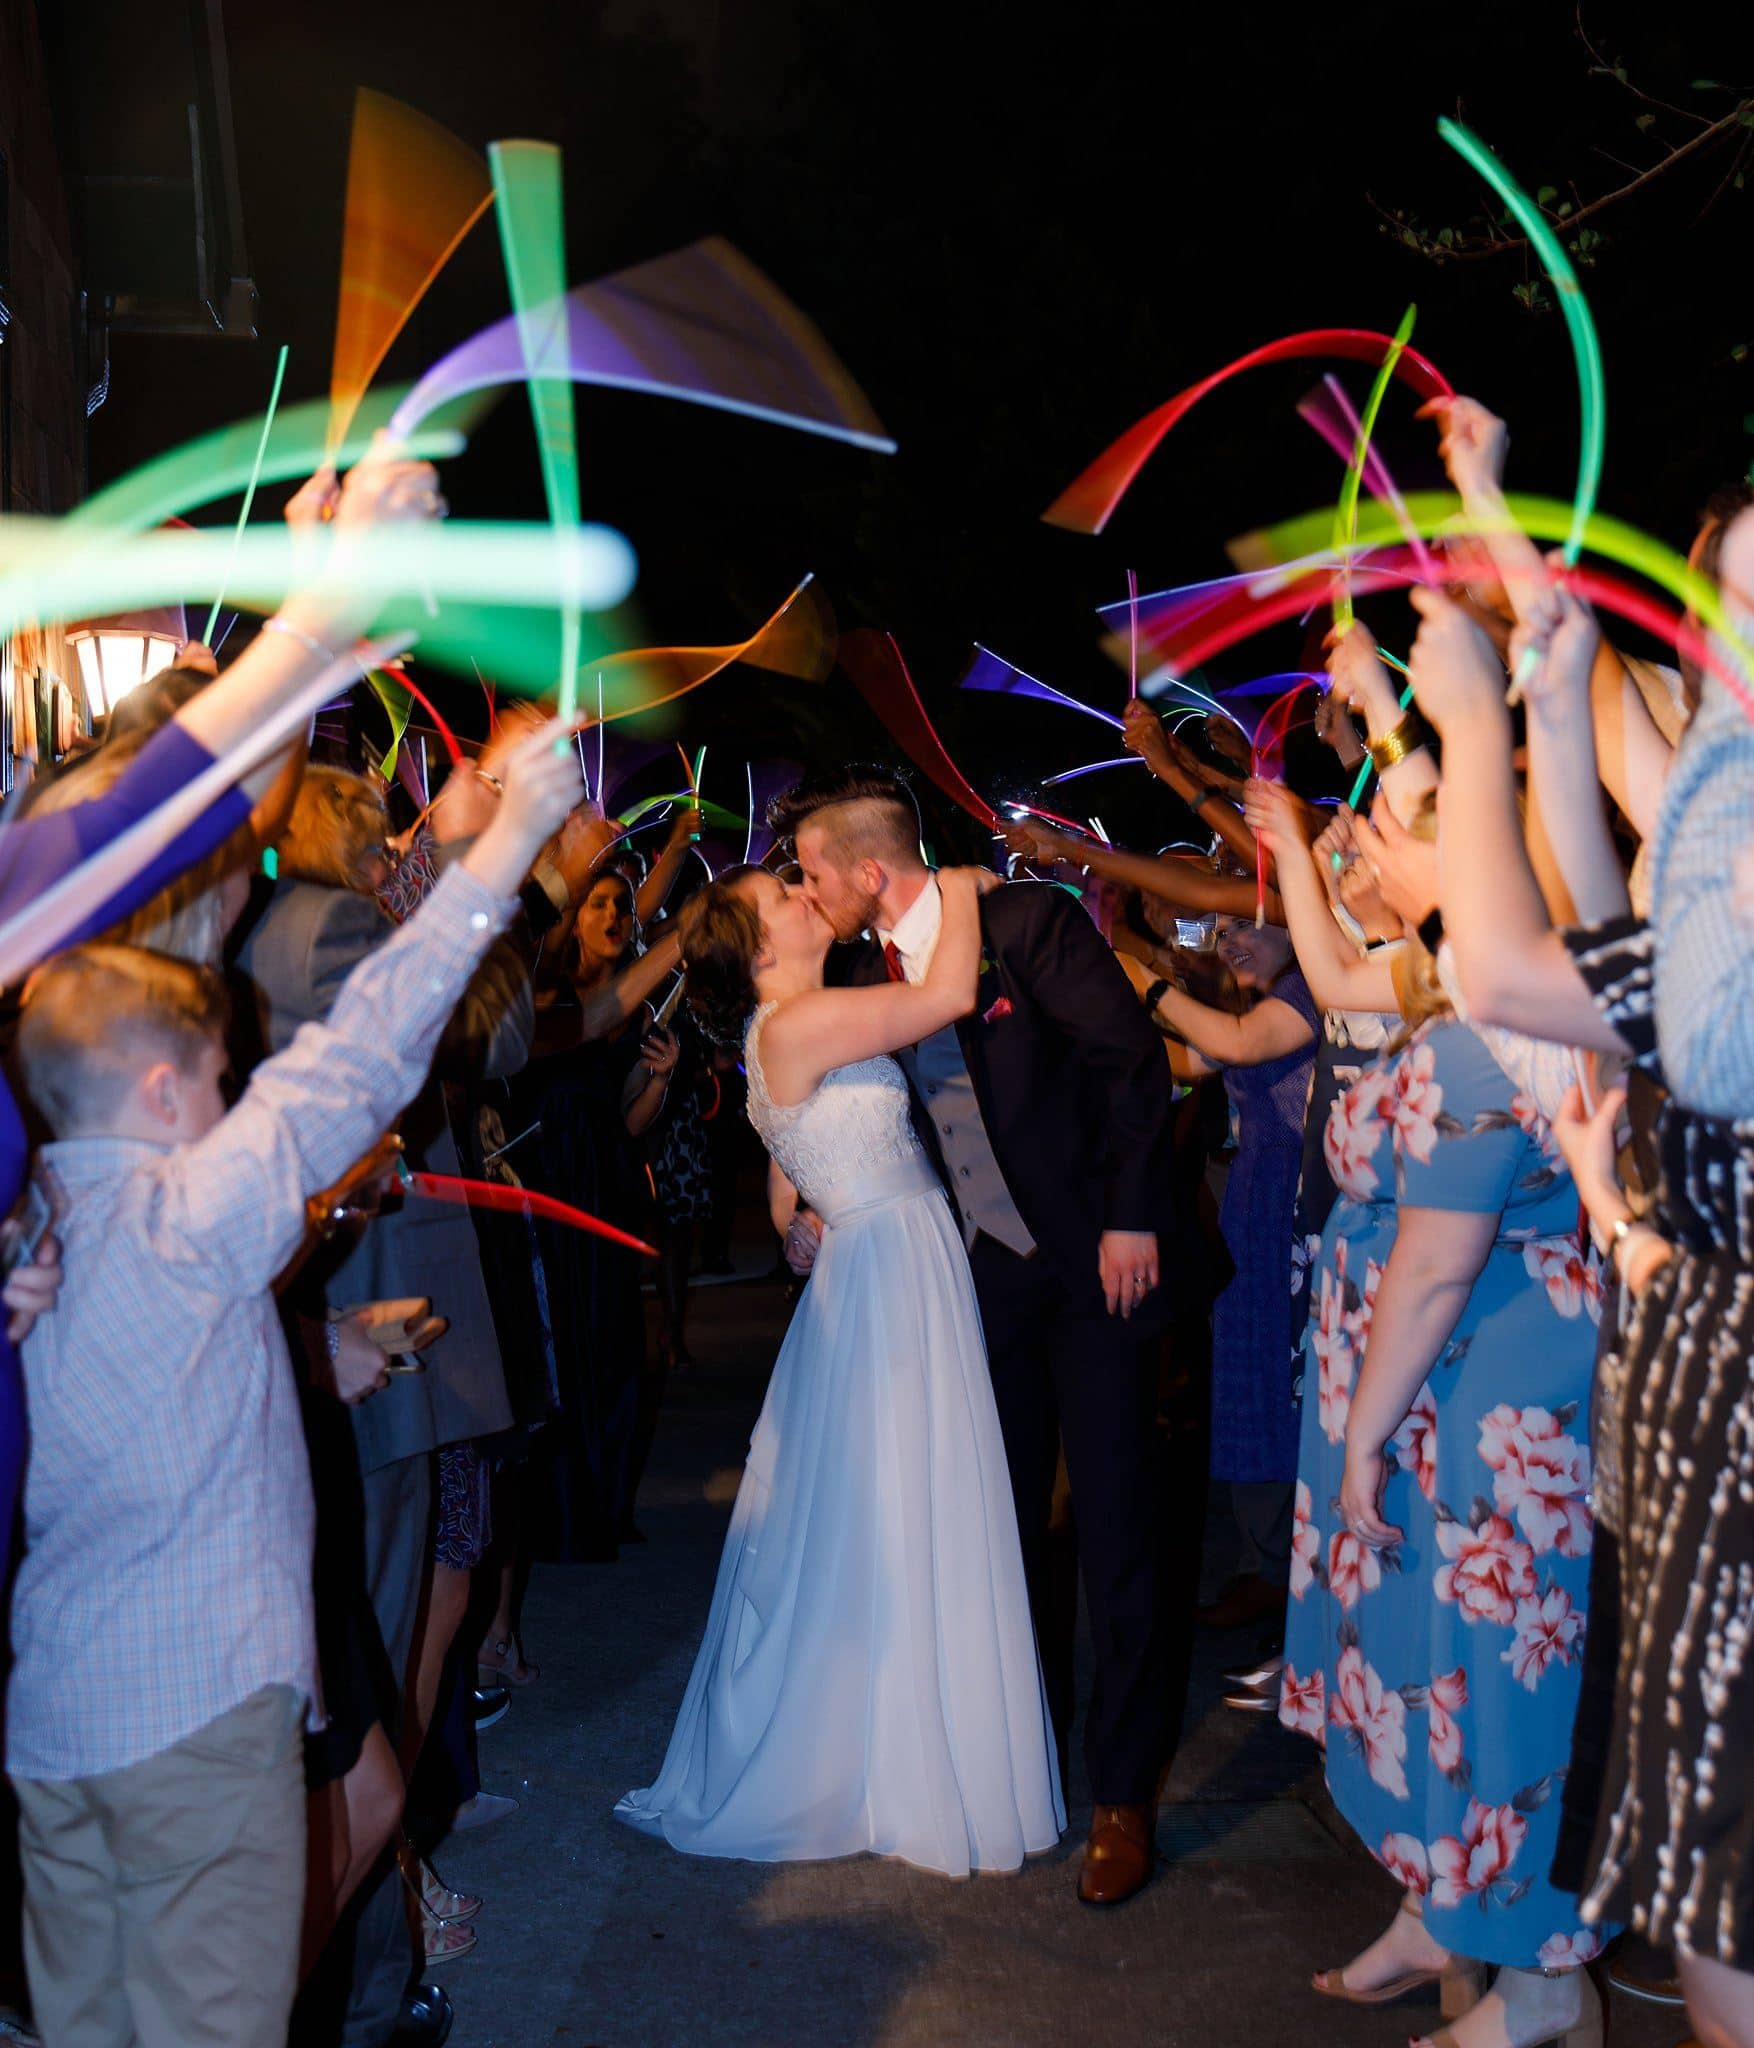 Glowstick wedding exit